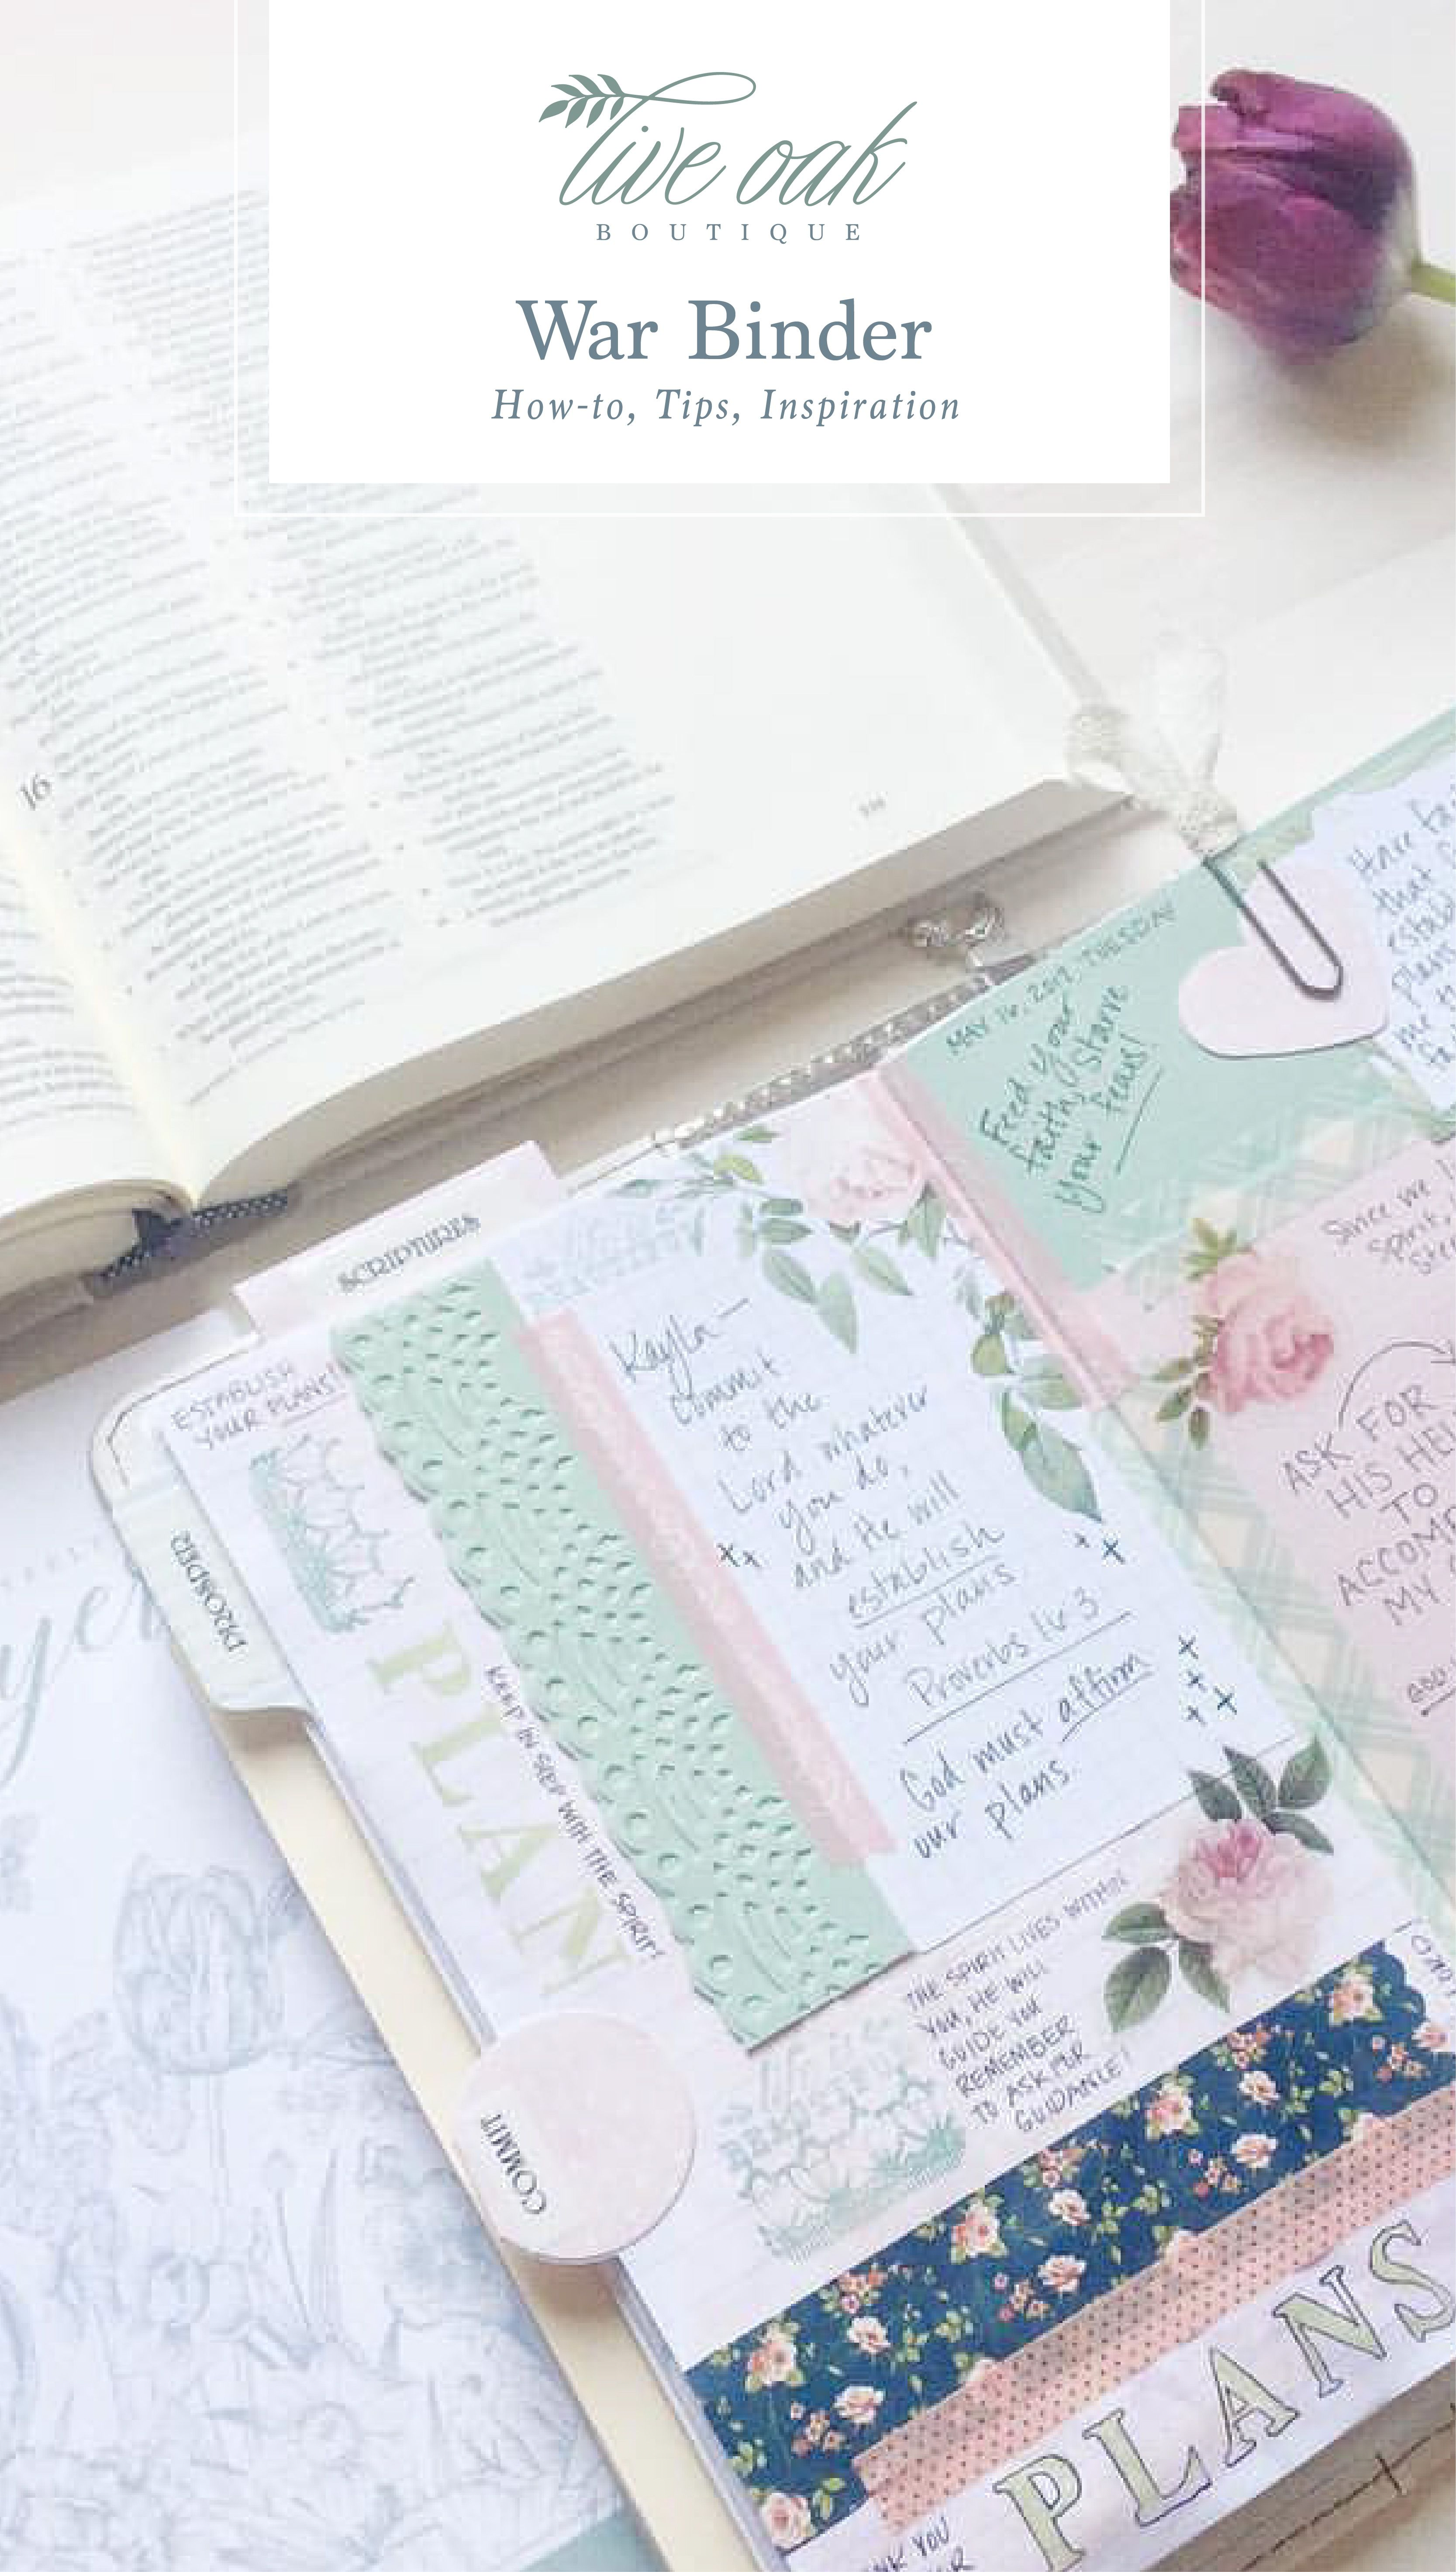 Want To Learn How To Create A War Binder Faith Journal